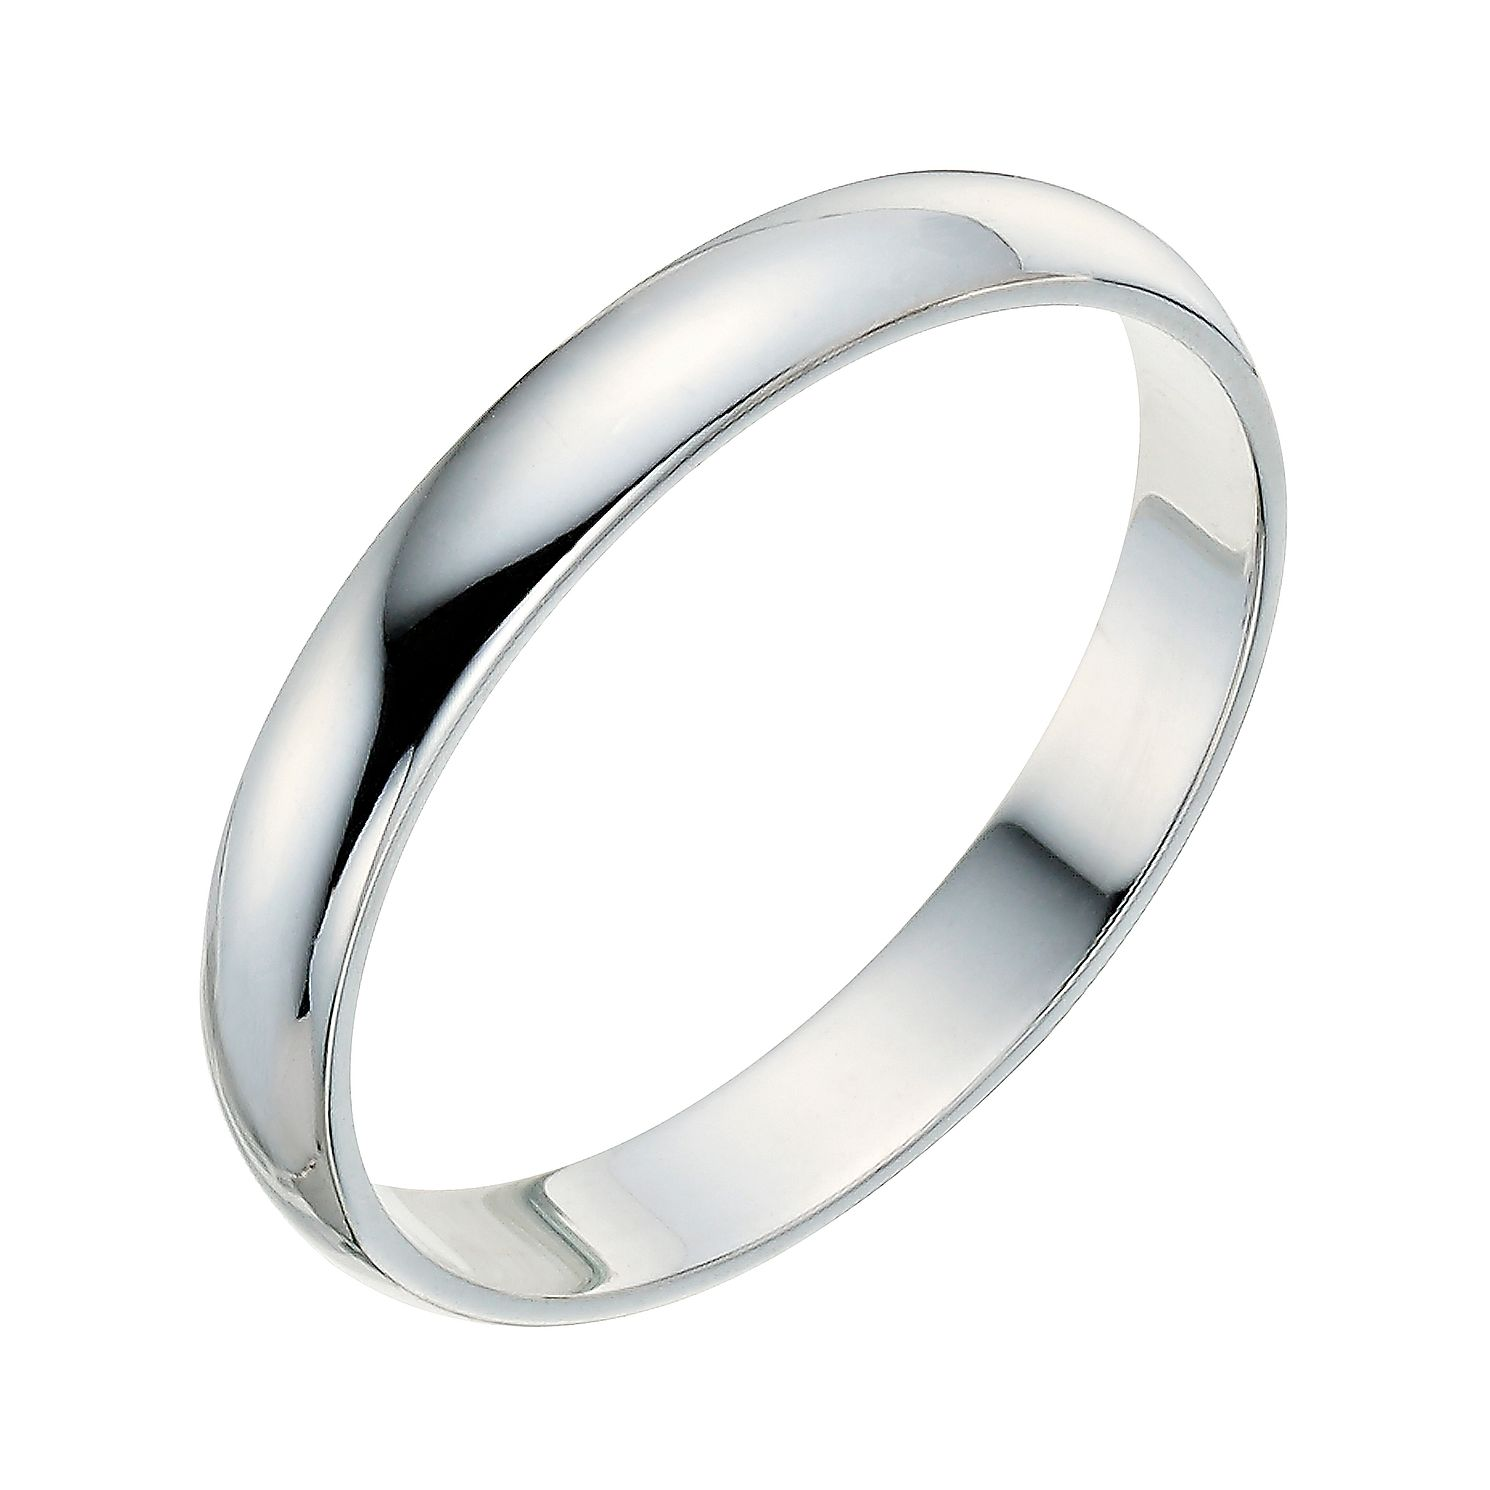 l ernest rings wedding number white ring jones jewellery occasion webstore meaningful category material product gold